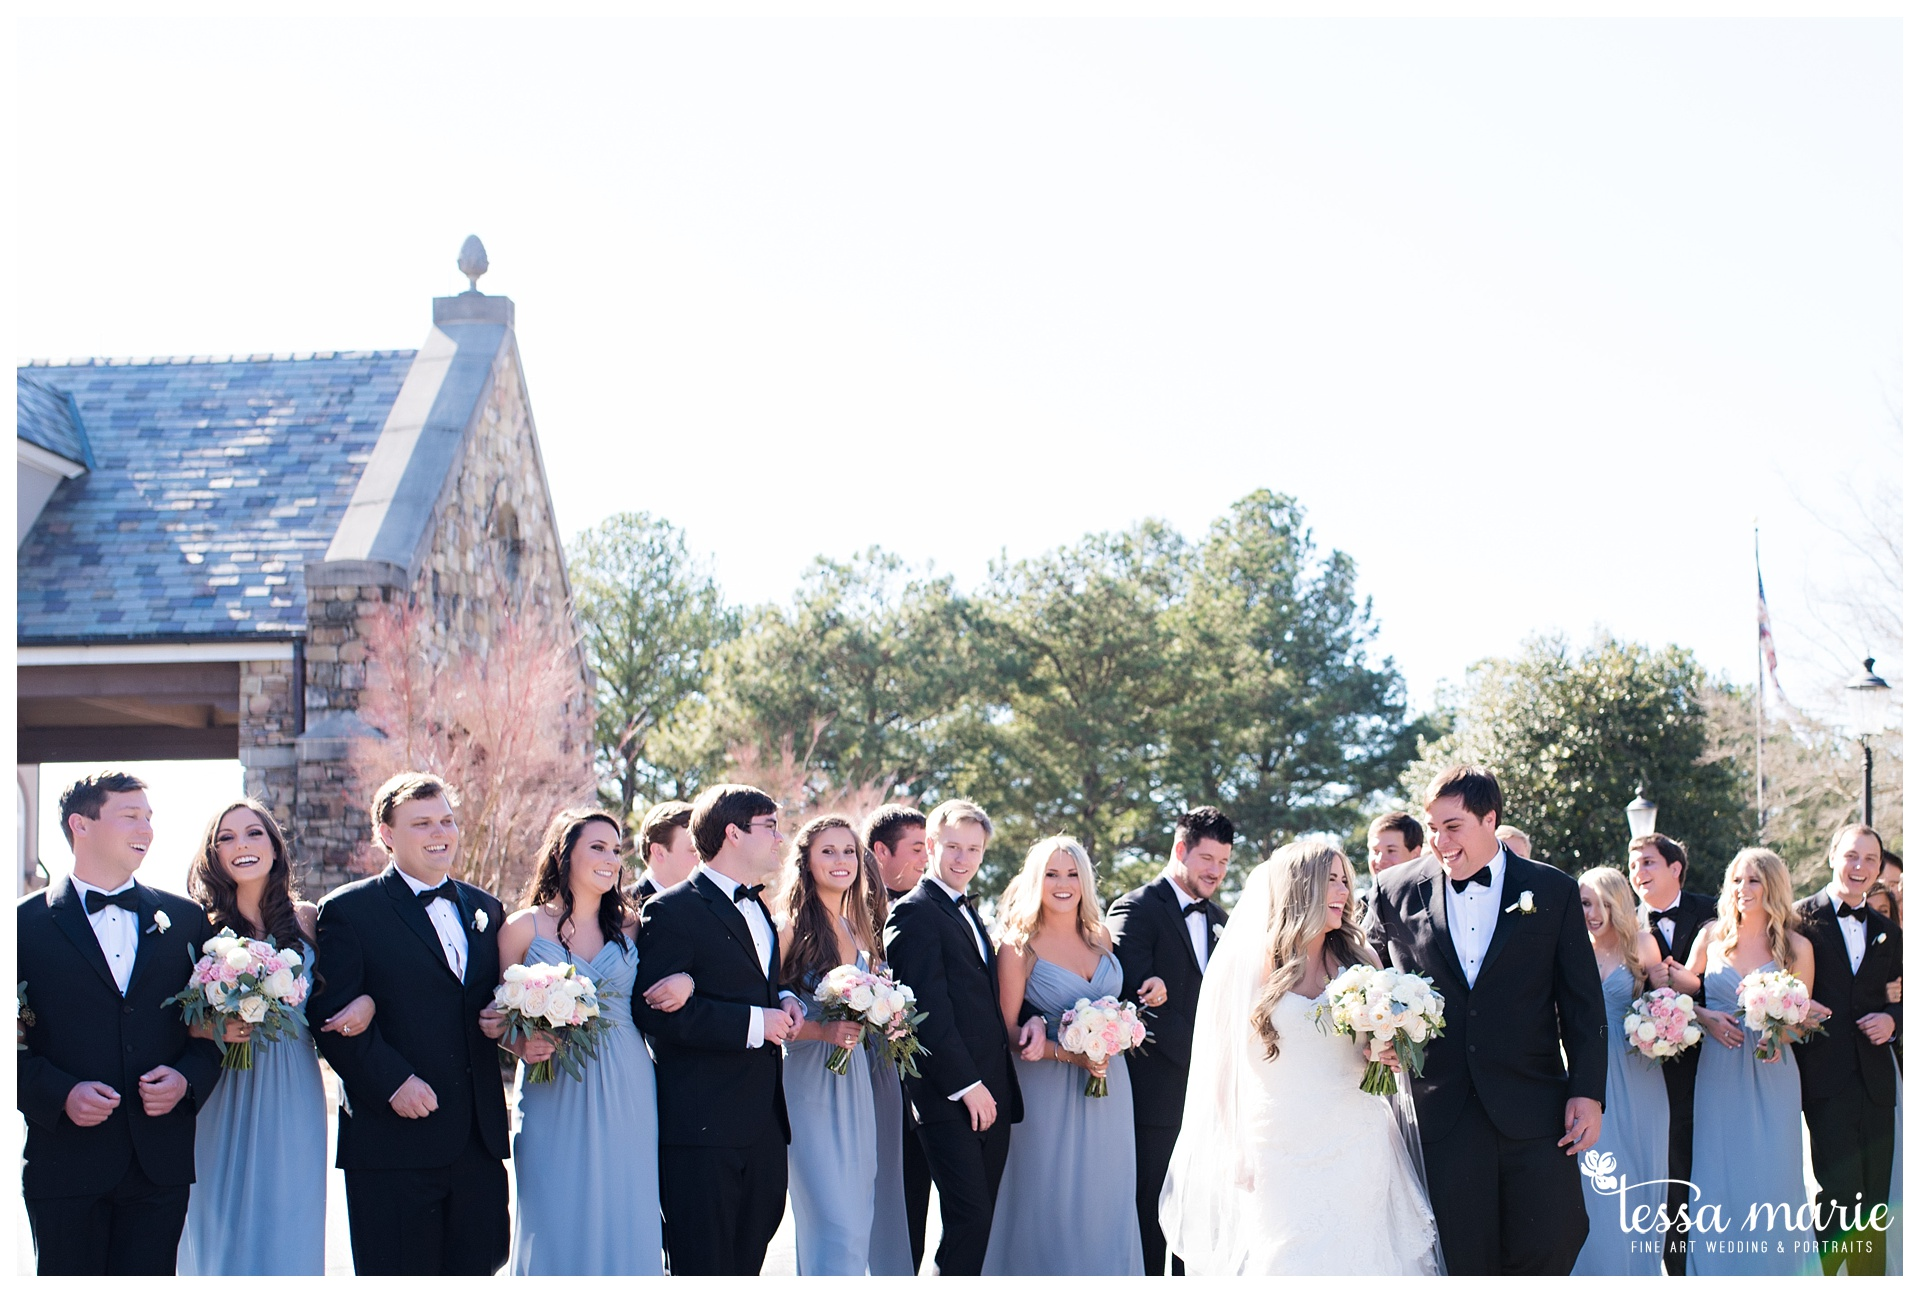 tessa_marie_weddings_legacy_story_focused_wedding_pictures_atlanta_wedding_photographer_0100